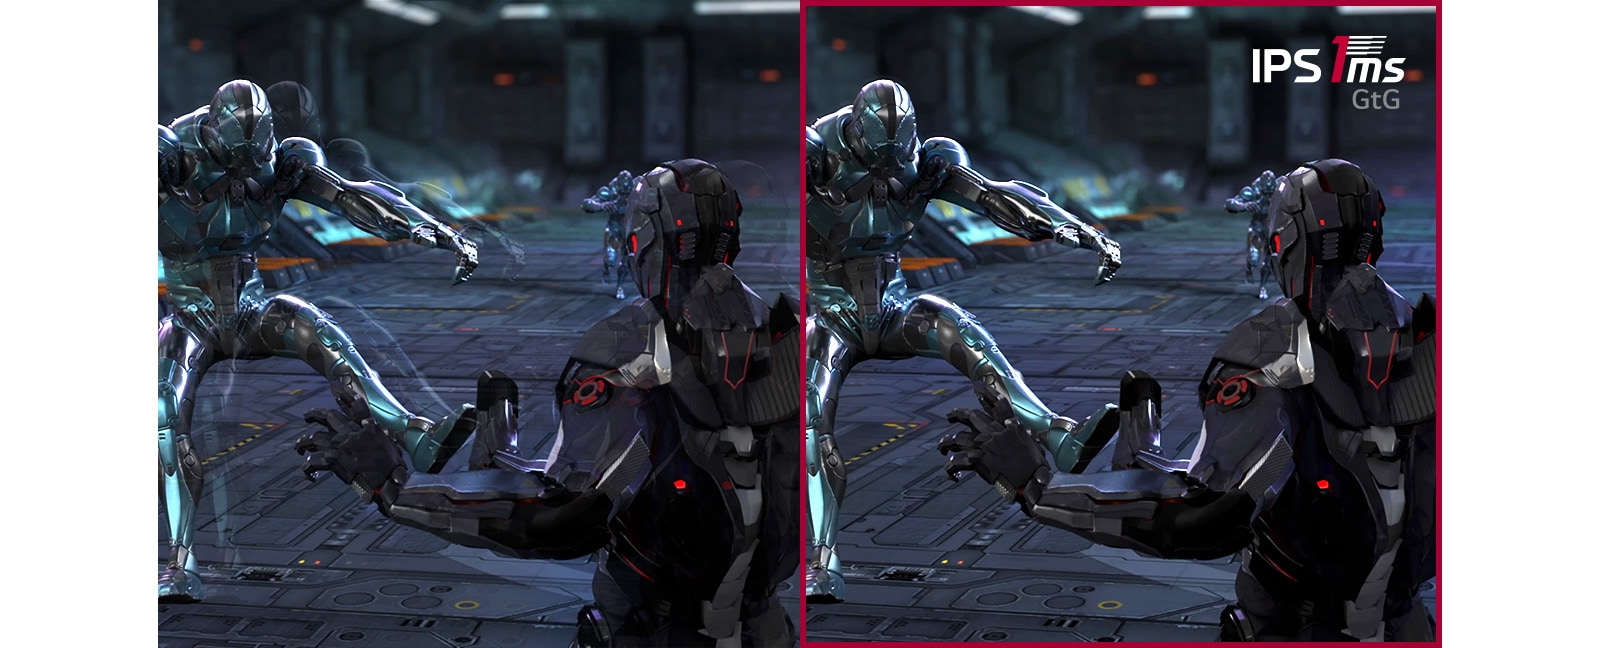 While the player guards and shoots against 3 opponents In the fast paced FPS game, the gaming scene with IPS 1ms (GtG) response time maintains more clear images without dimming and flickering screens, comparing to the scene with IPS 5ms response time.